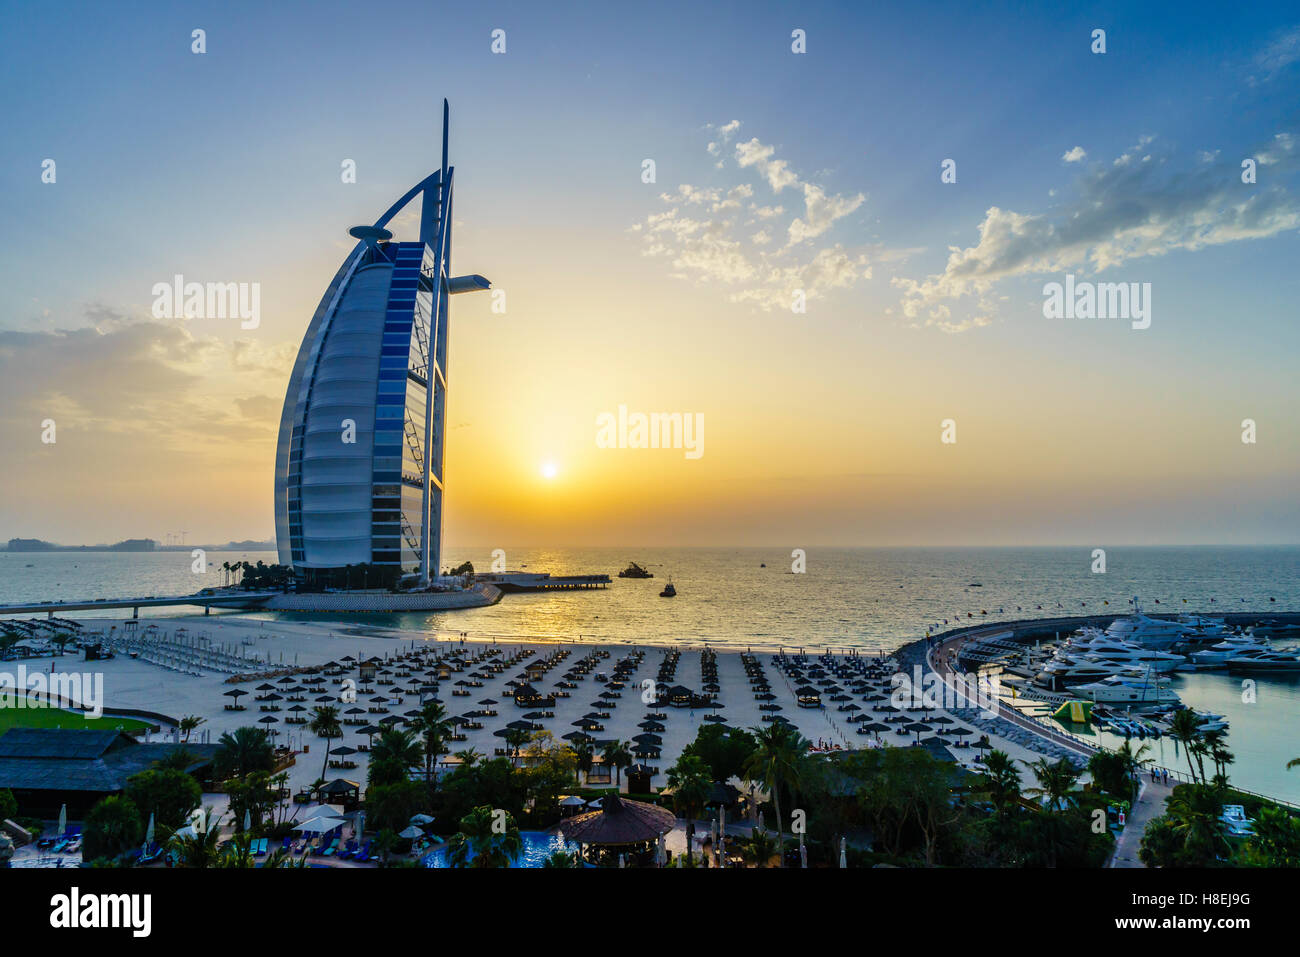 Burj Al Arab, Jumeirah Beach at sunset, Dubai, United Arab Emirates, Middle East - Stock Image